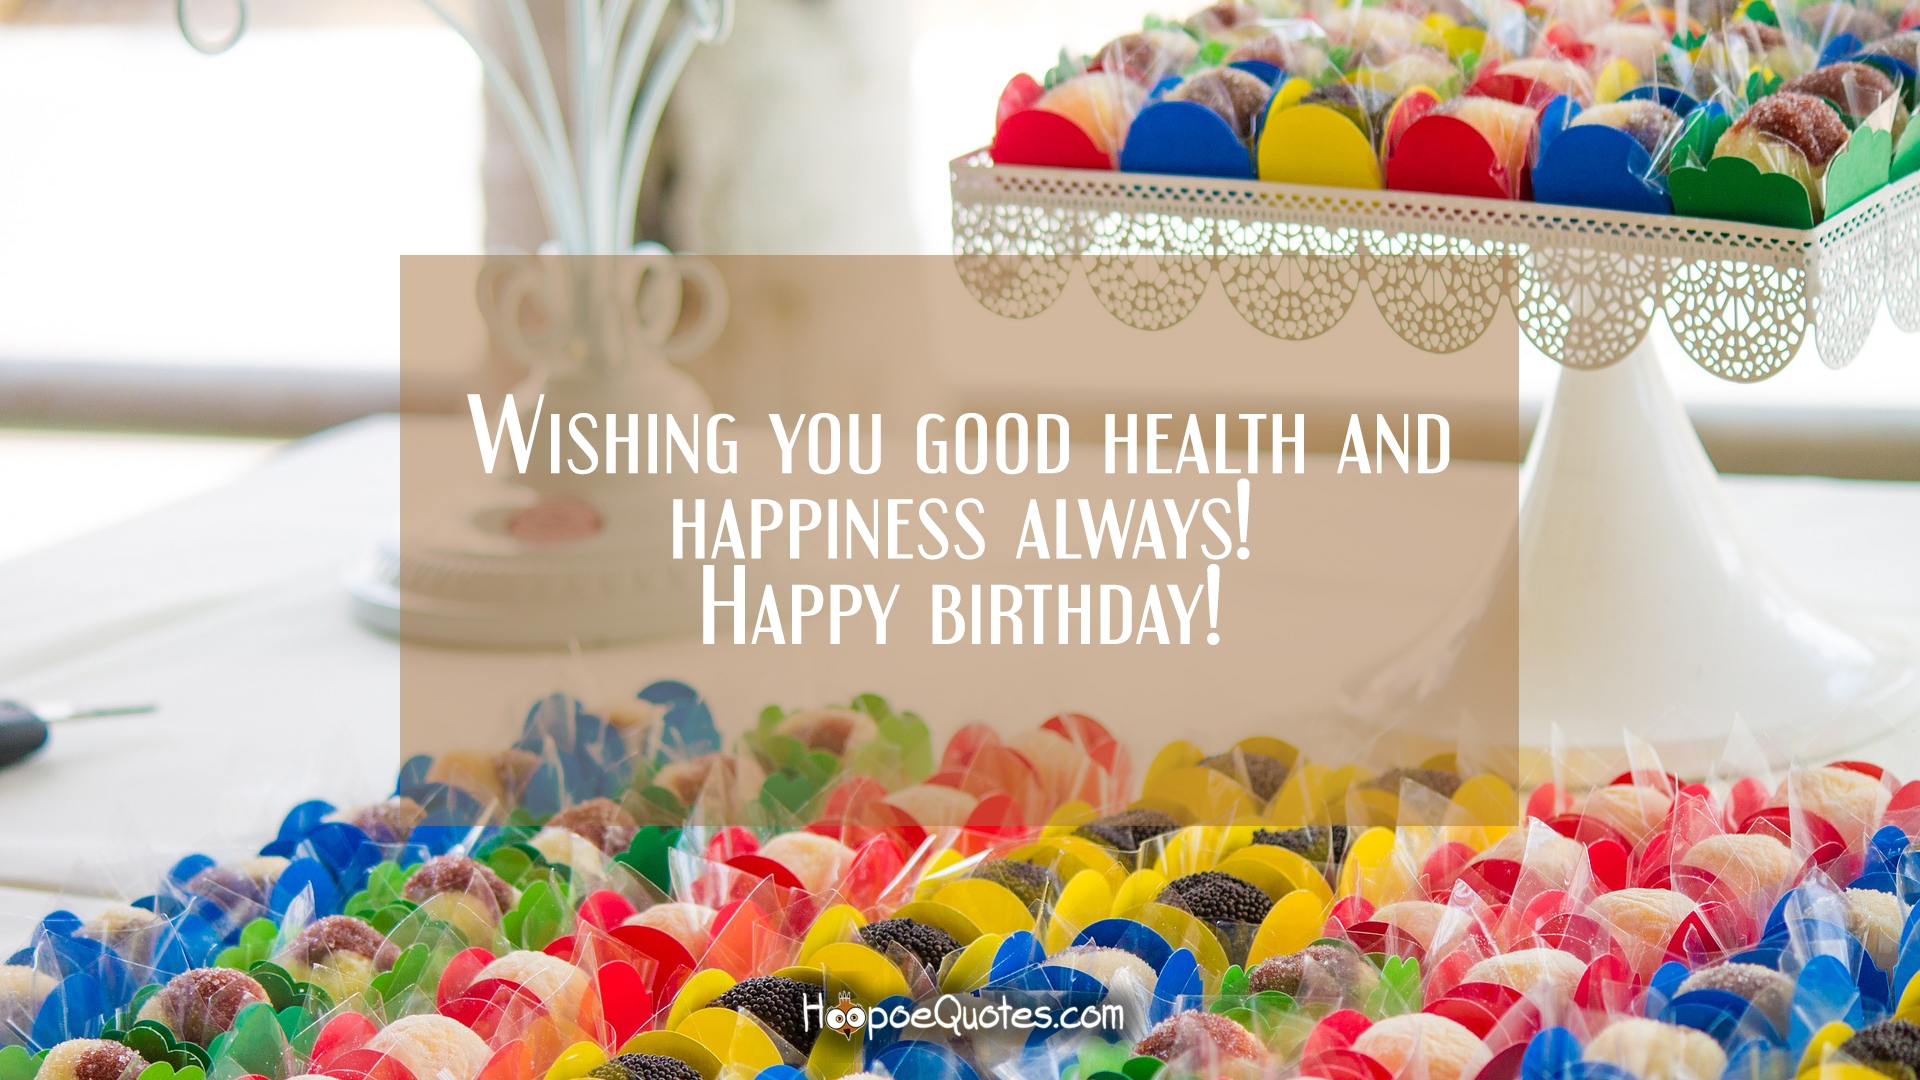 Wishing You Good Health And Happiness Always! Happy